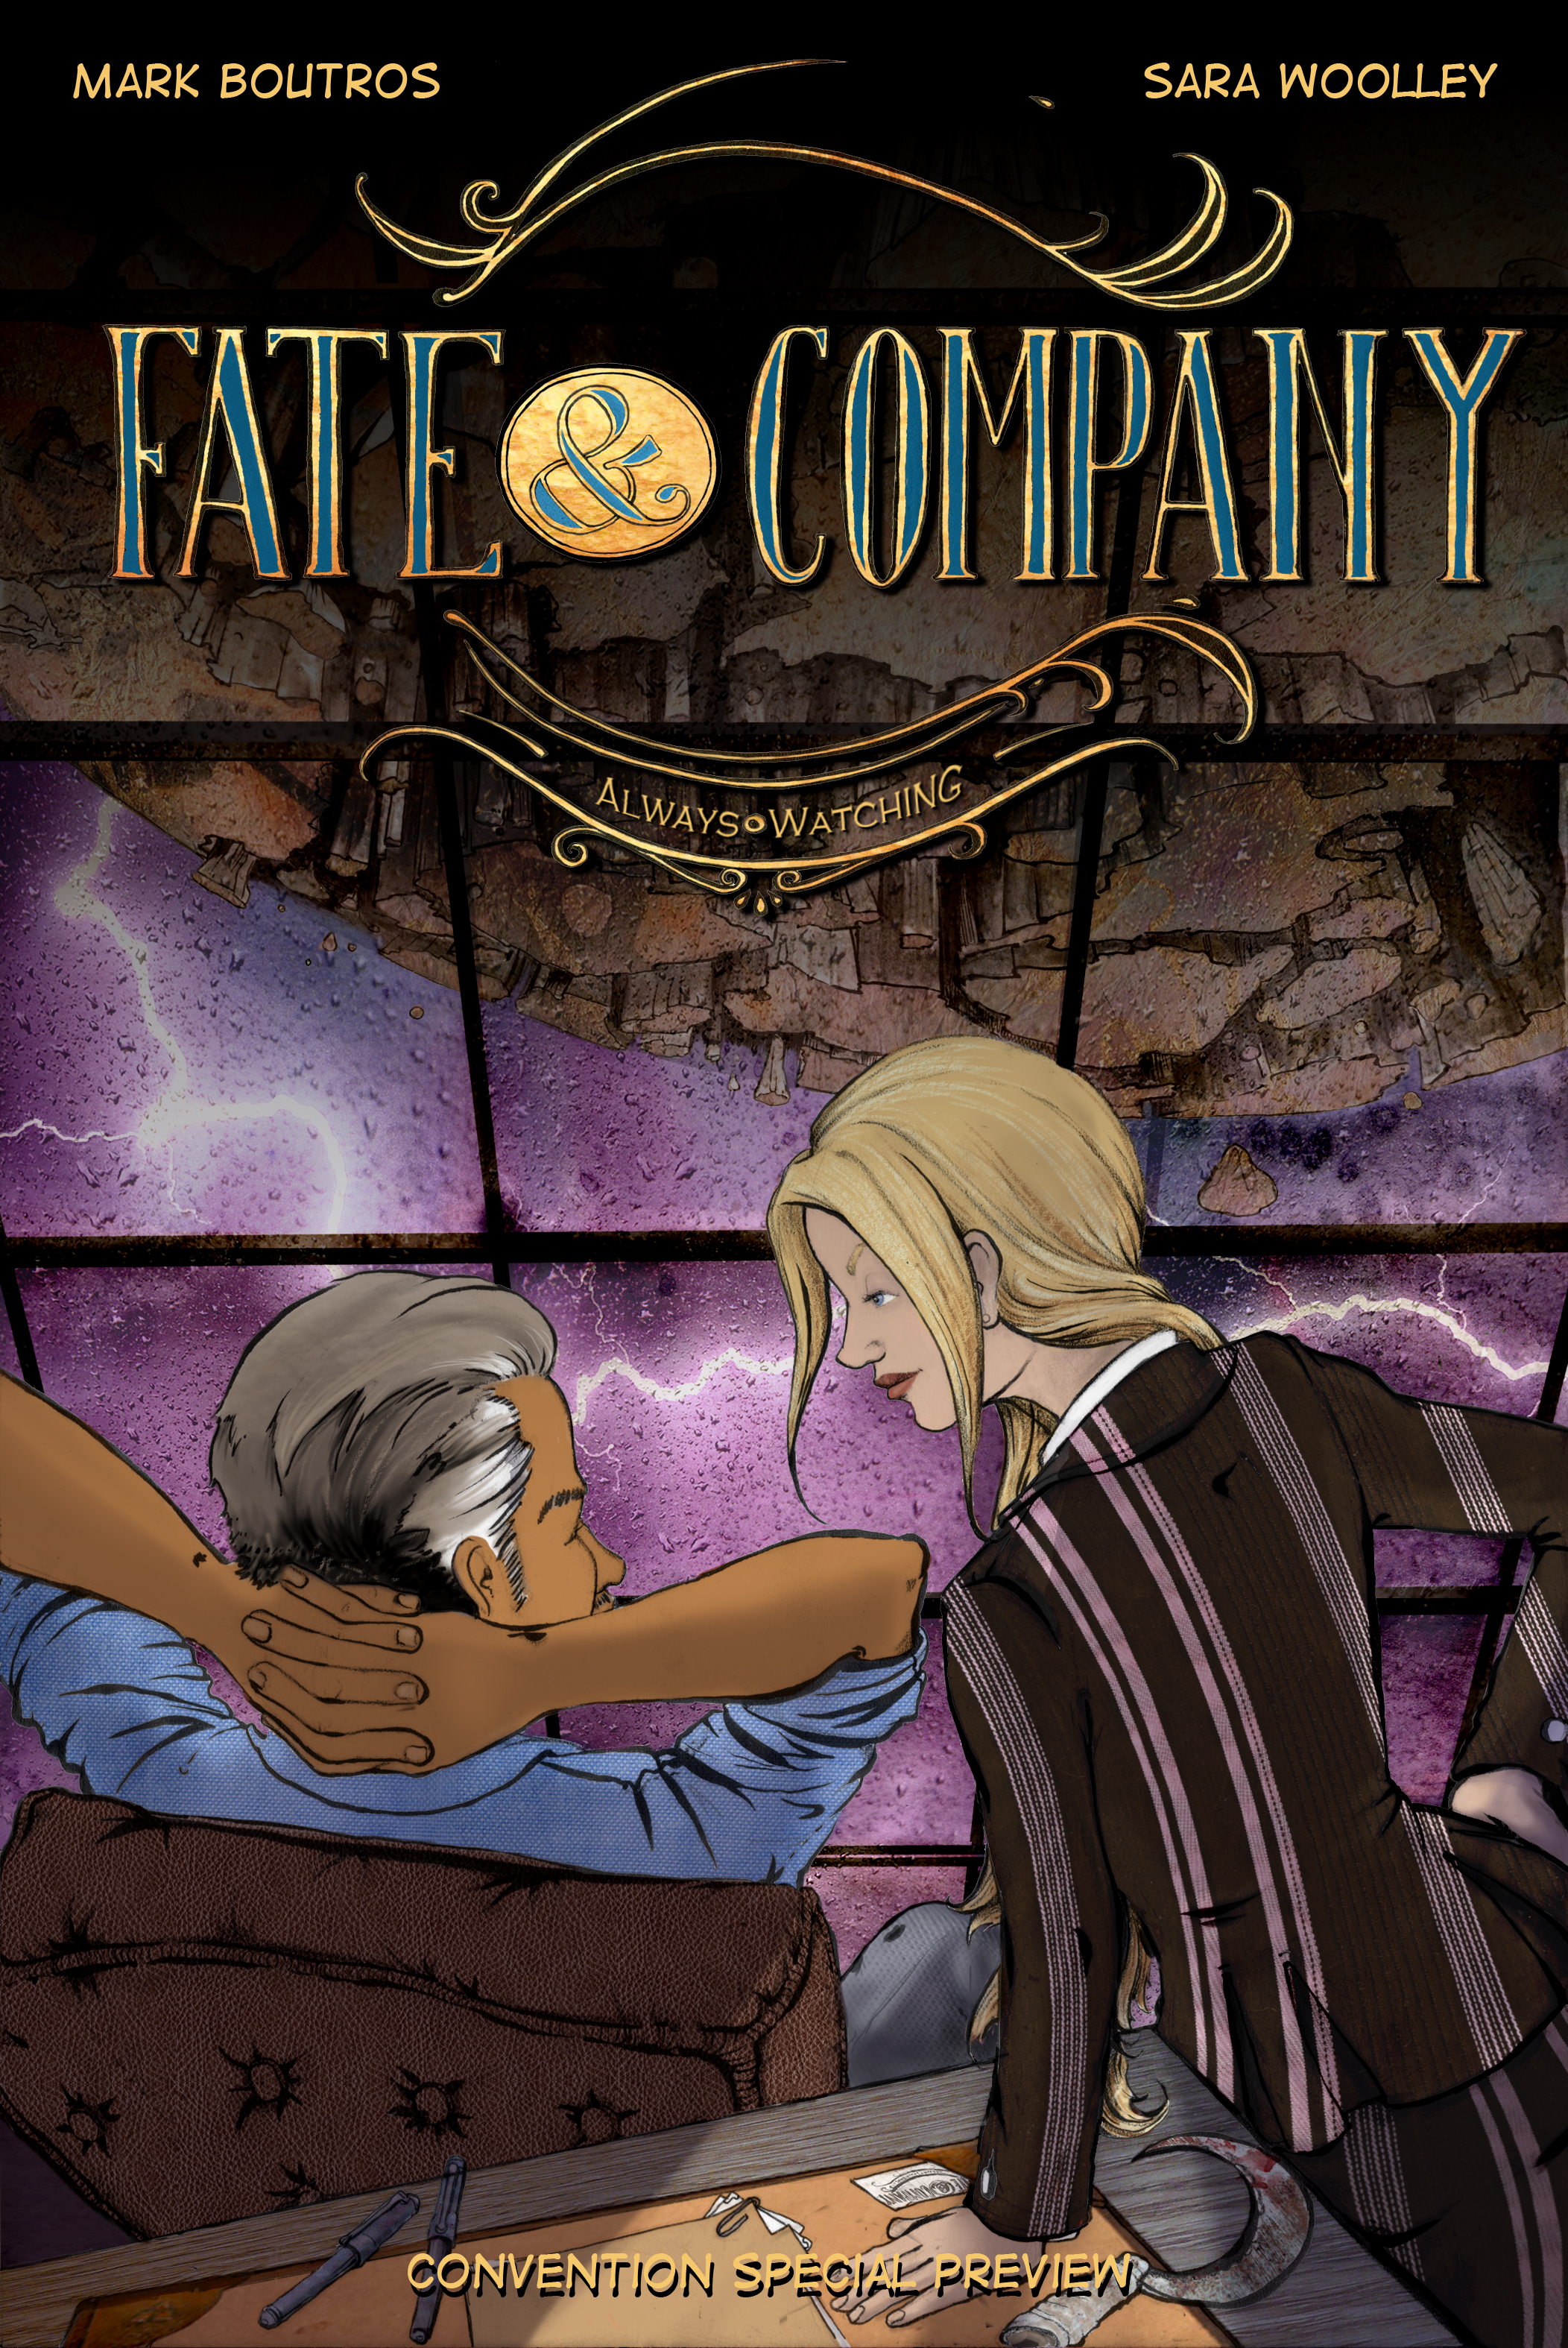 Fate & Company, an original graphic novella series created by Mark Boutros and Sara Woolley